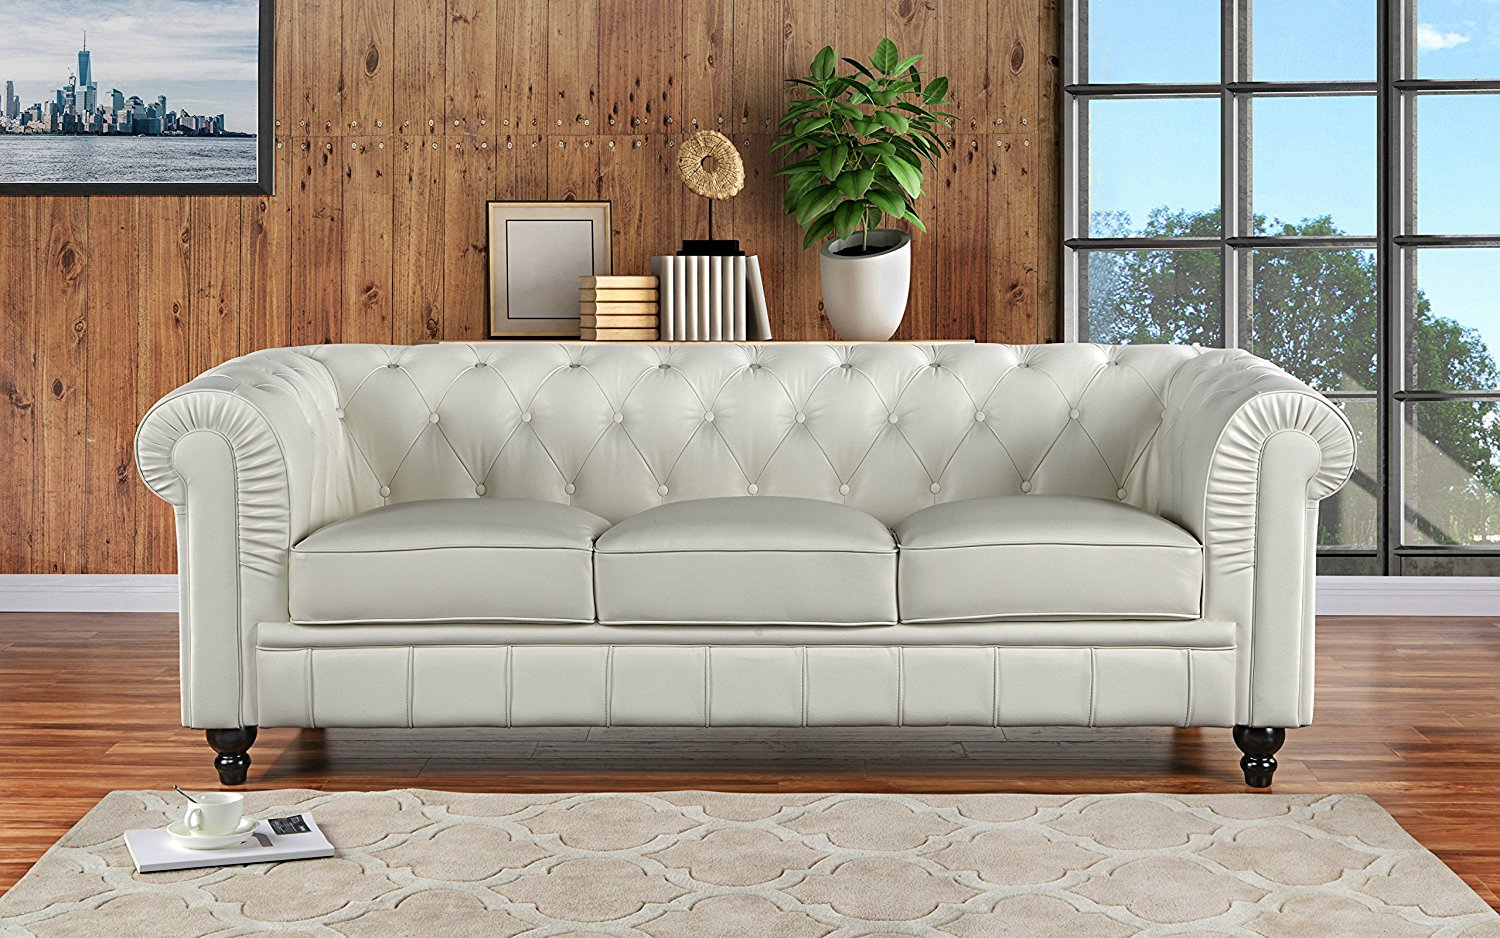 Sofa Wholesalers Uk Cheap Chesterfield Leather Sofa Uk Find Chesterfield Leather Sofa